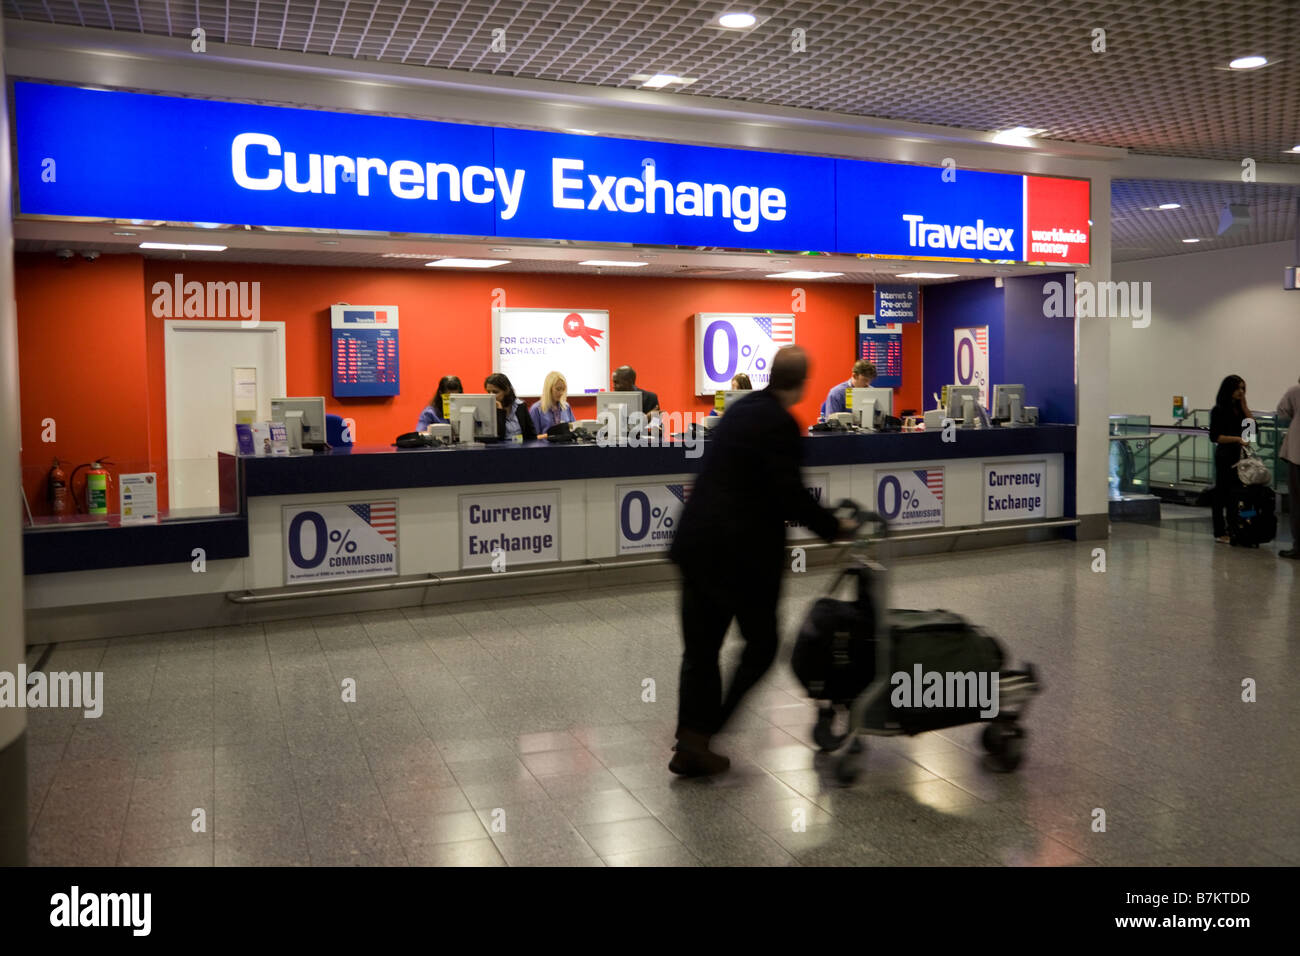 bureau de change office operated by travelex at heathrow airport stock photo 21949241 alamy. Black Bedroom Furniture Sets. Home Design Ideas